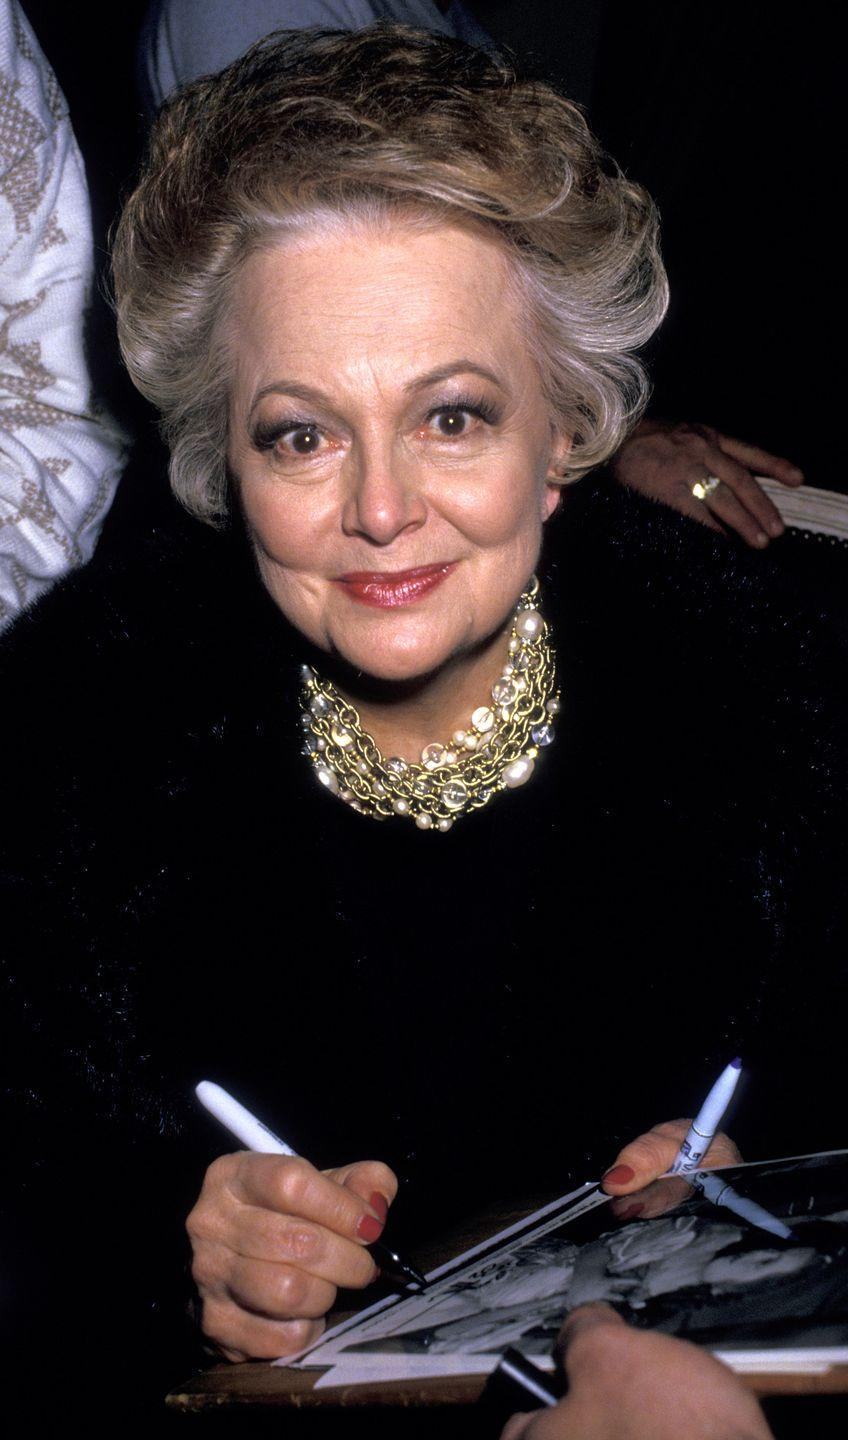 <p>The actress signing her autograph at the 44th Annual Golden Globe Awards in 1987.</p>